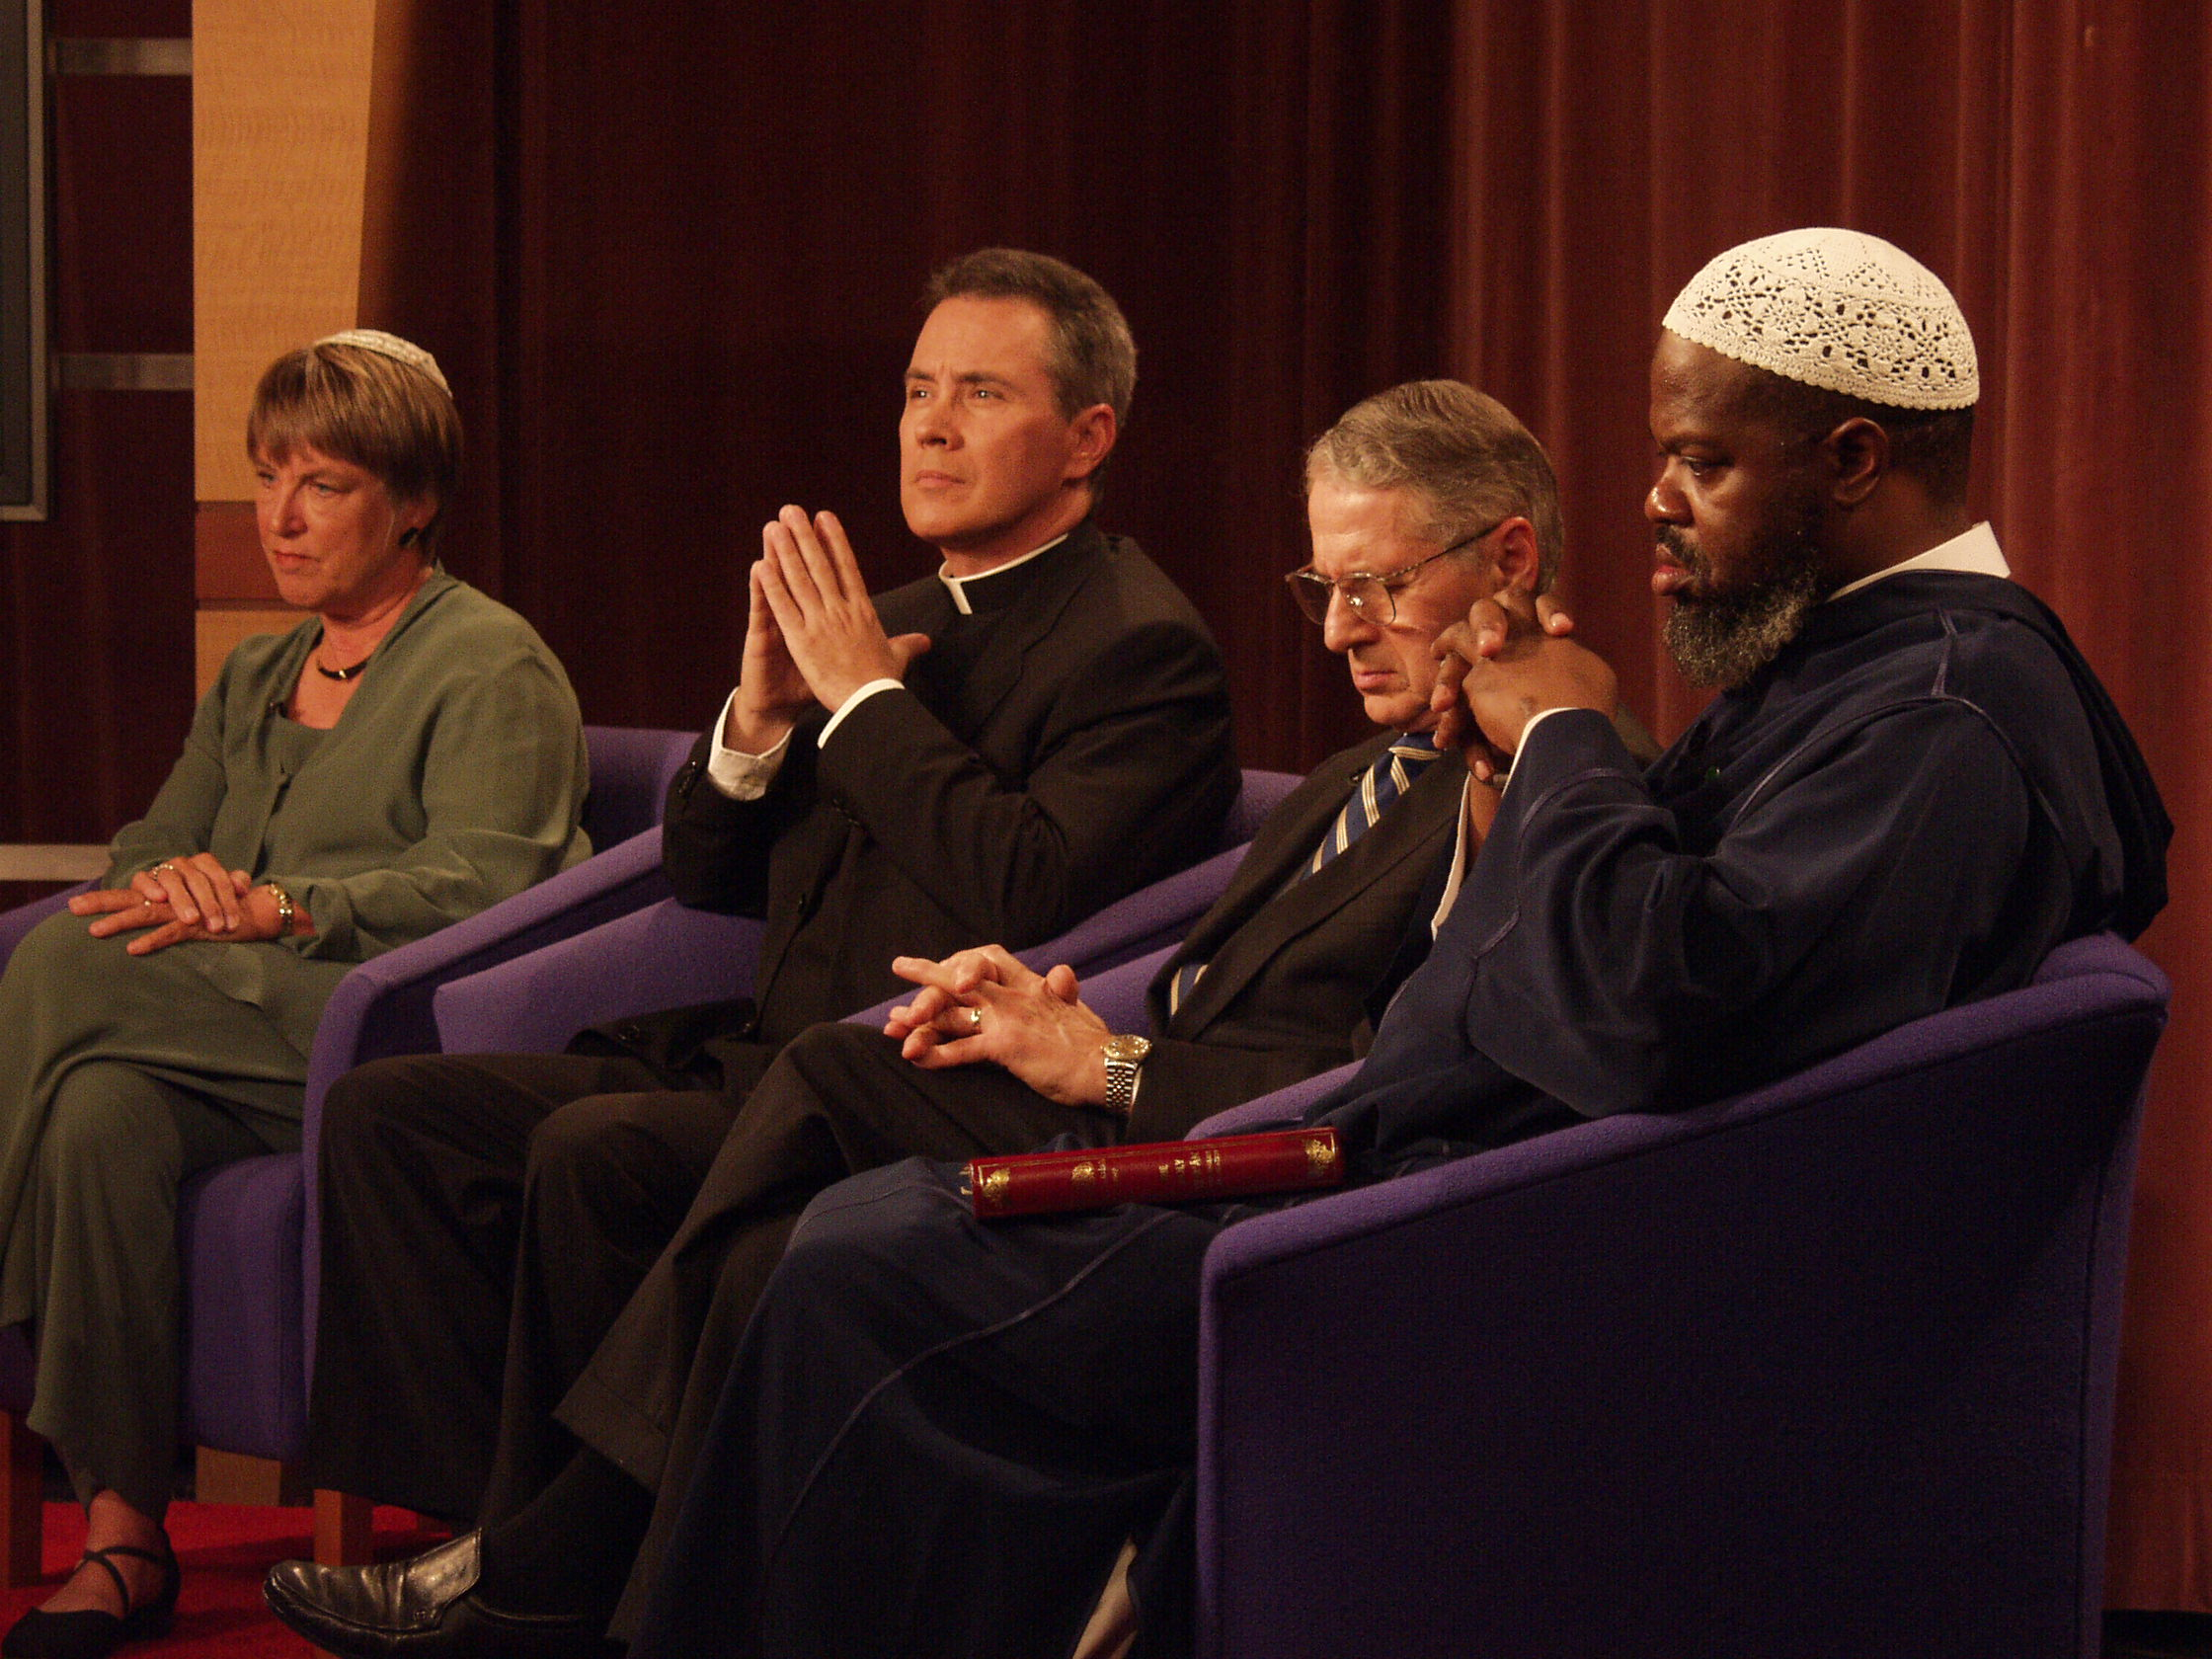 moyers muslim This week, bill moyers talks with imam zaid shakir, who has been called a voice of conscience for american muslims but his views on islam in america put him this week, bill moyers talks with imam zaid shakir, who has been called a voice of conscience for american muslims.